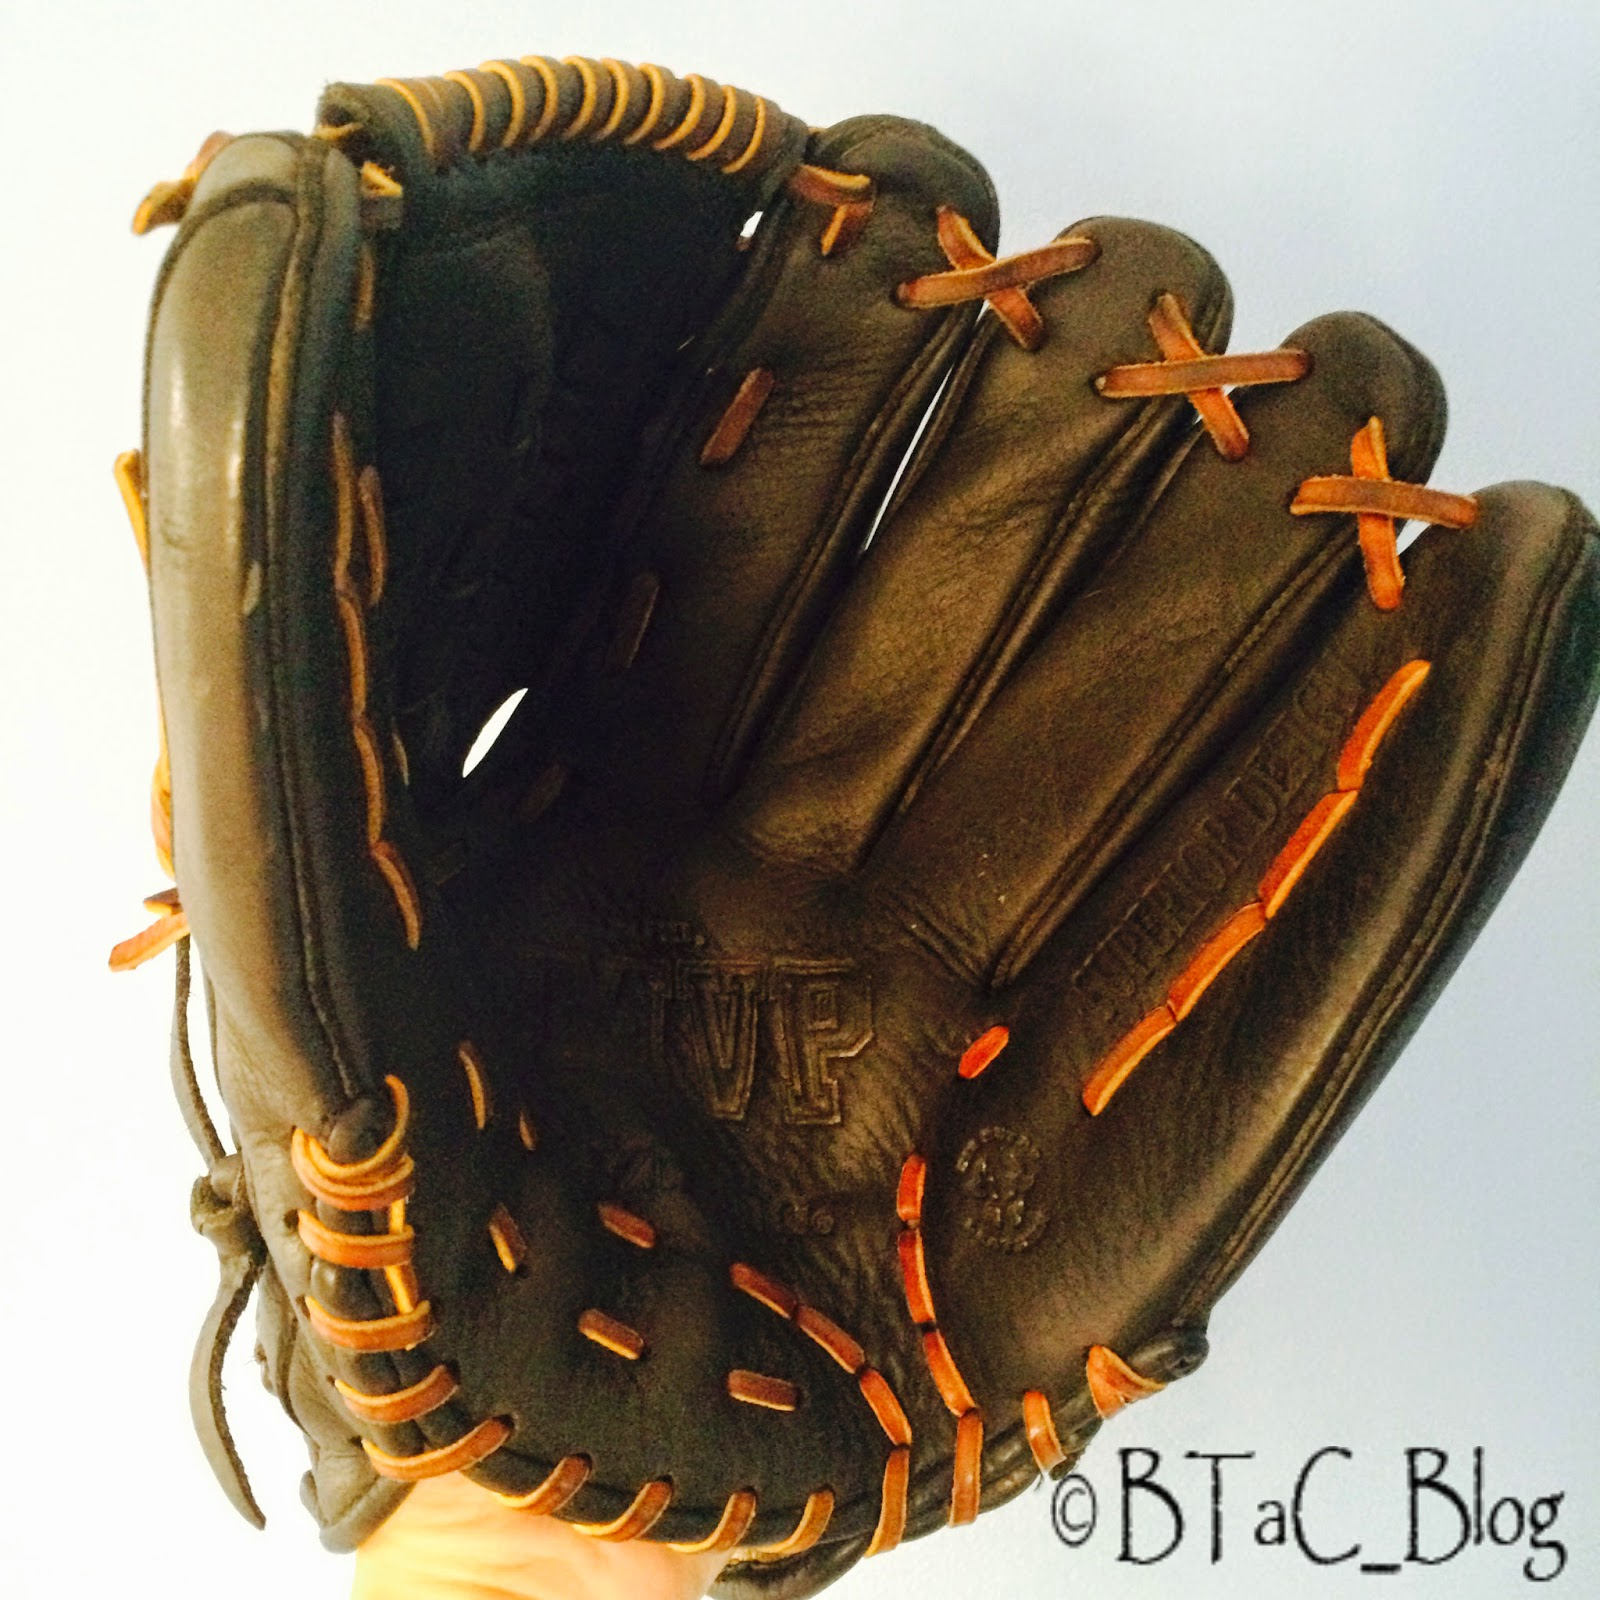 This is an adult softball glove. A child's baseball glove would work too.